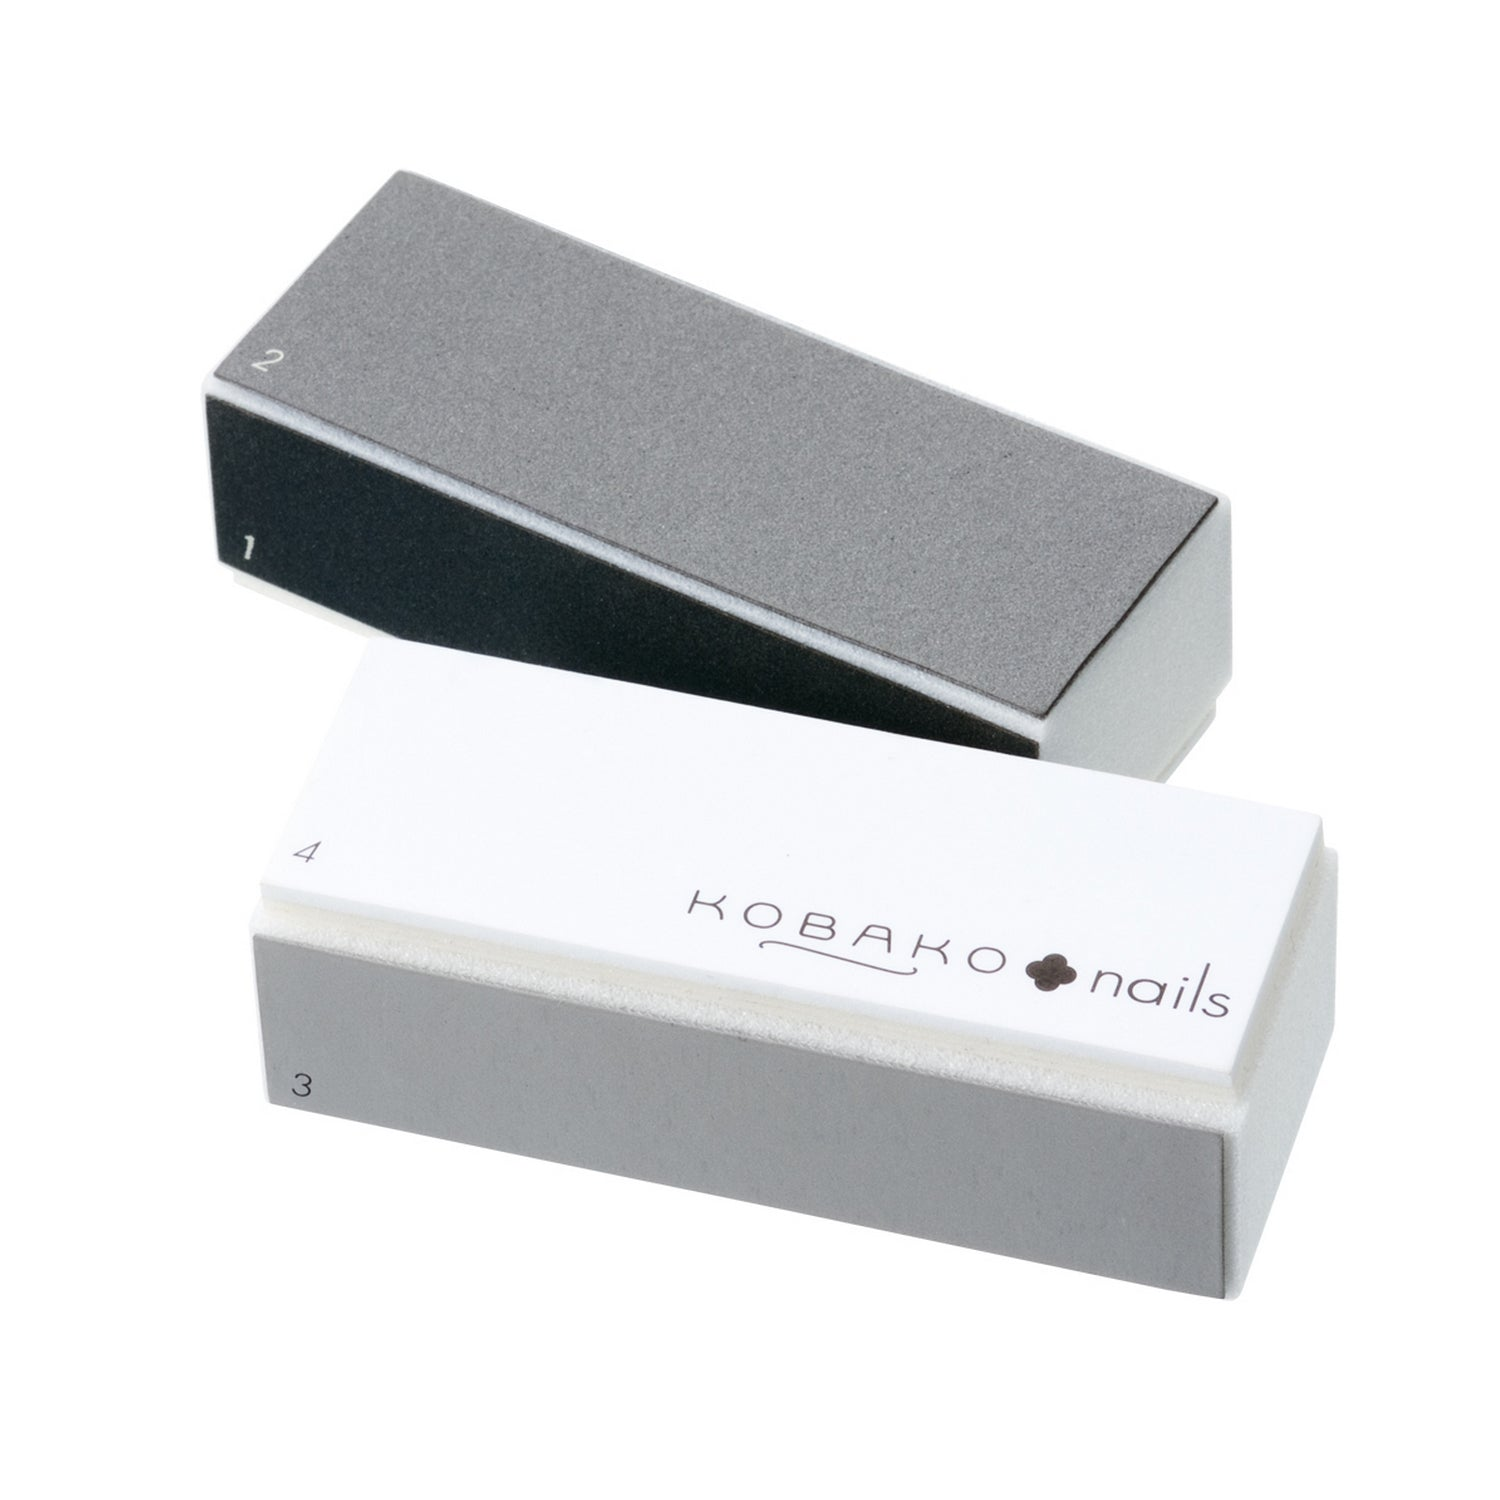 Kobako polishing block